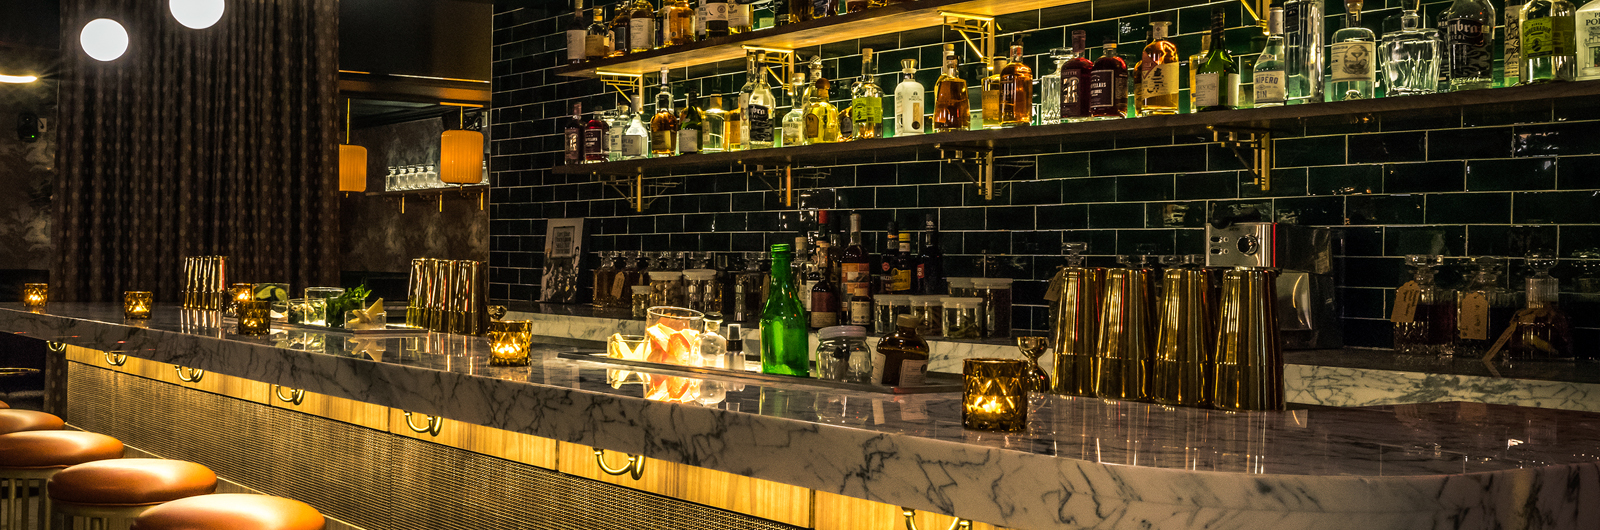 The 18th Room - New York | The 18th Room: Secret Cocktail-ing in Chelsea